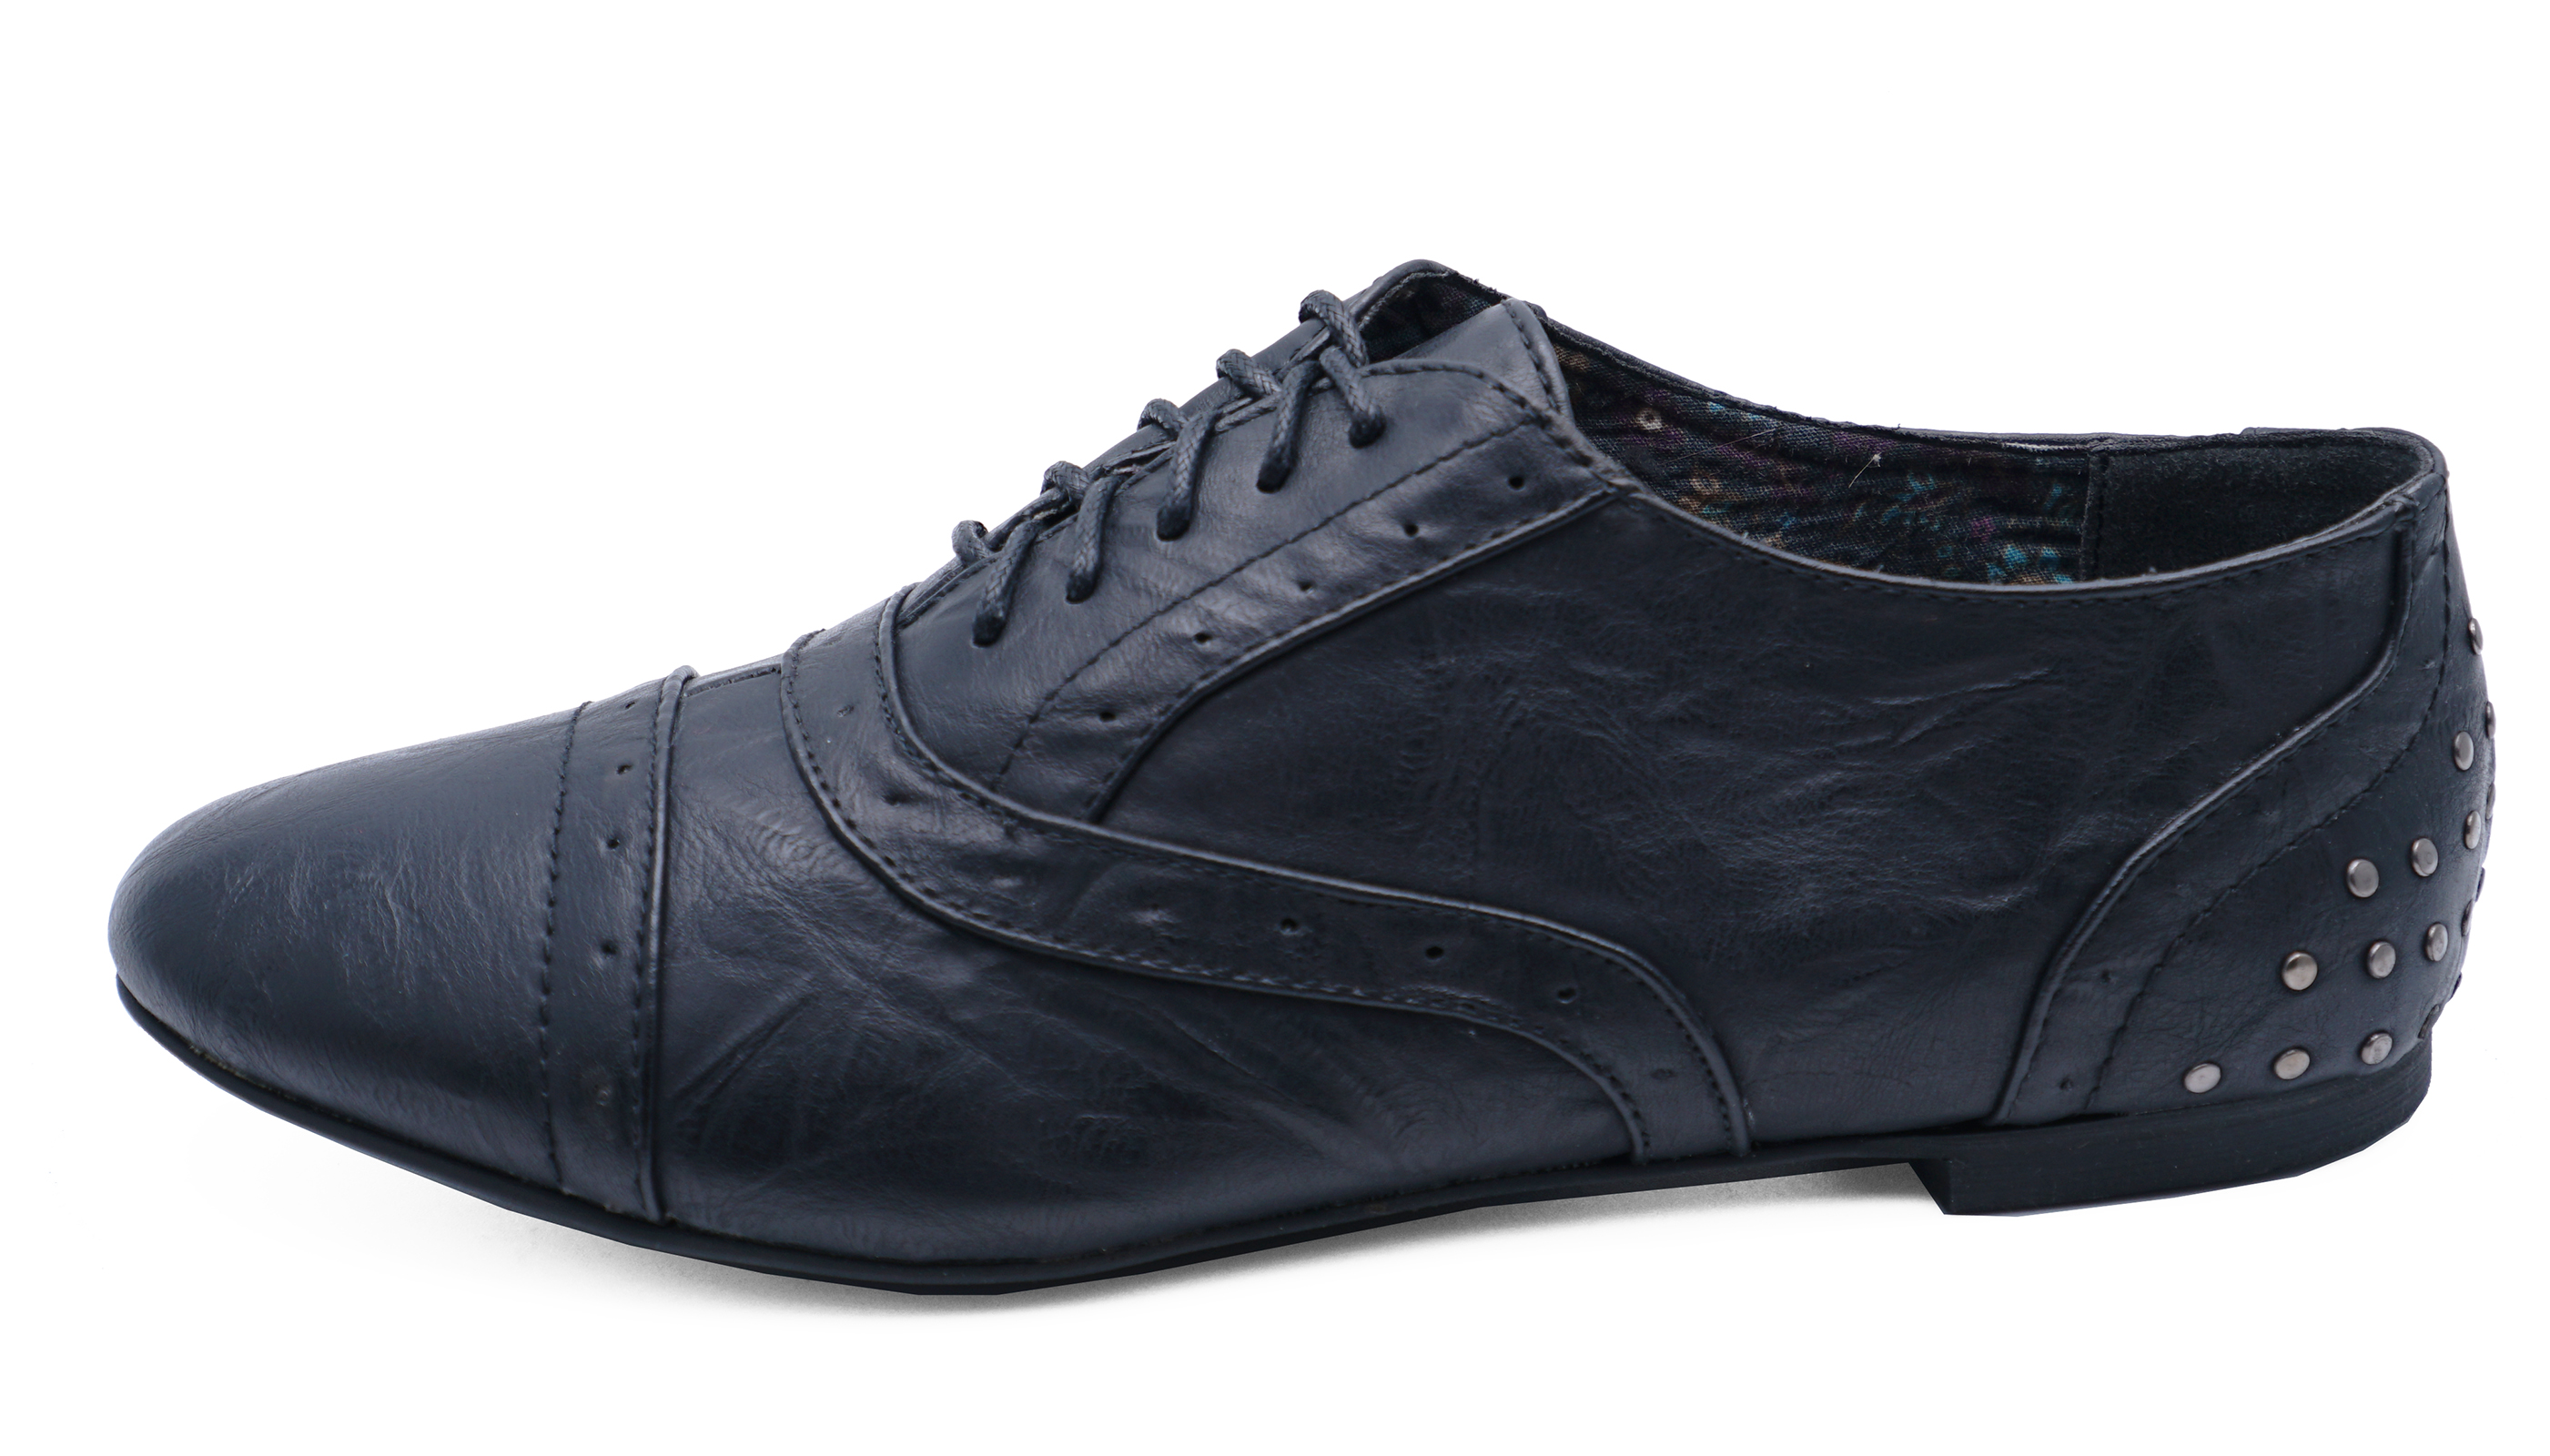 LADIES-BLACK-STUD-LACE-UP-FLAT-BROGUES-LOAFERS-SMART-WORK-SHOES-PUMPS-SIZES-3-8 thumbnail 6